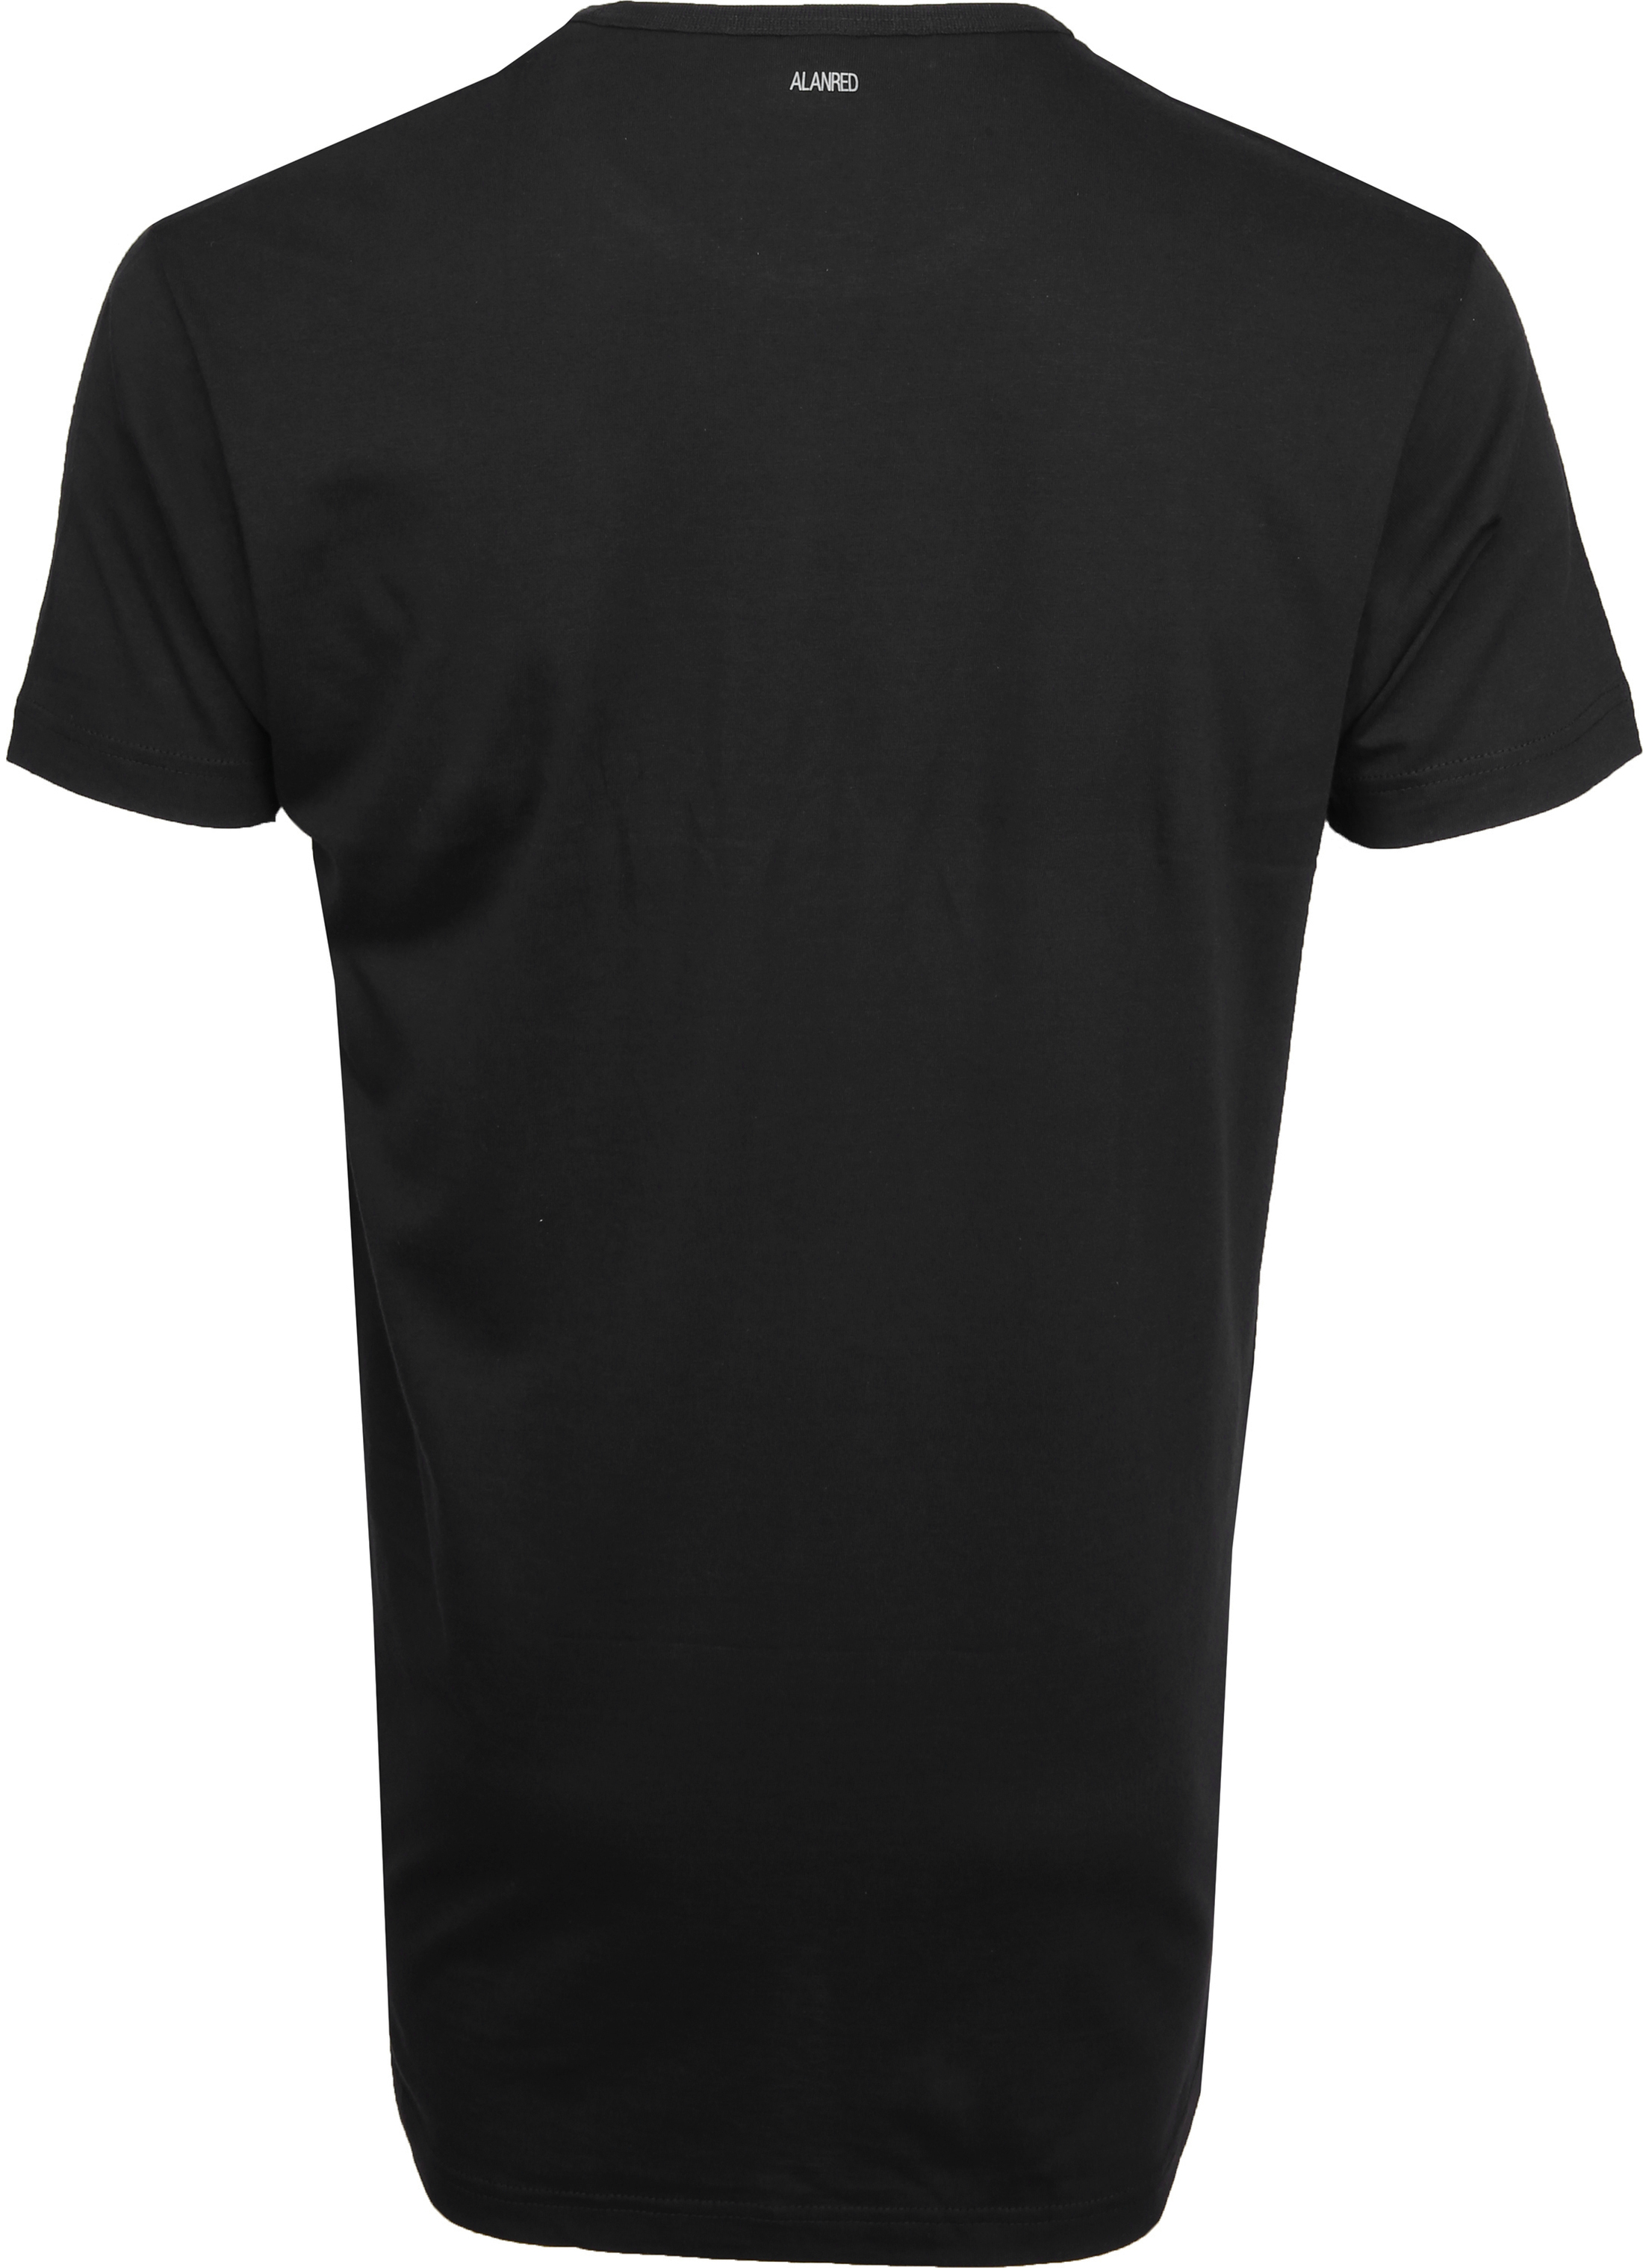 Alan Red Extra Long T-Shirts Derby Black (2-Pack) foto 3